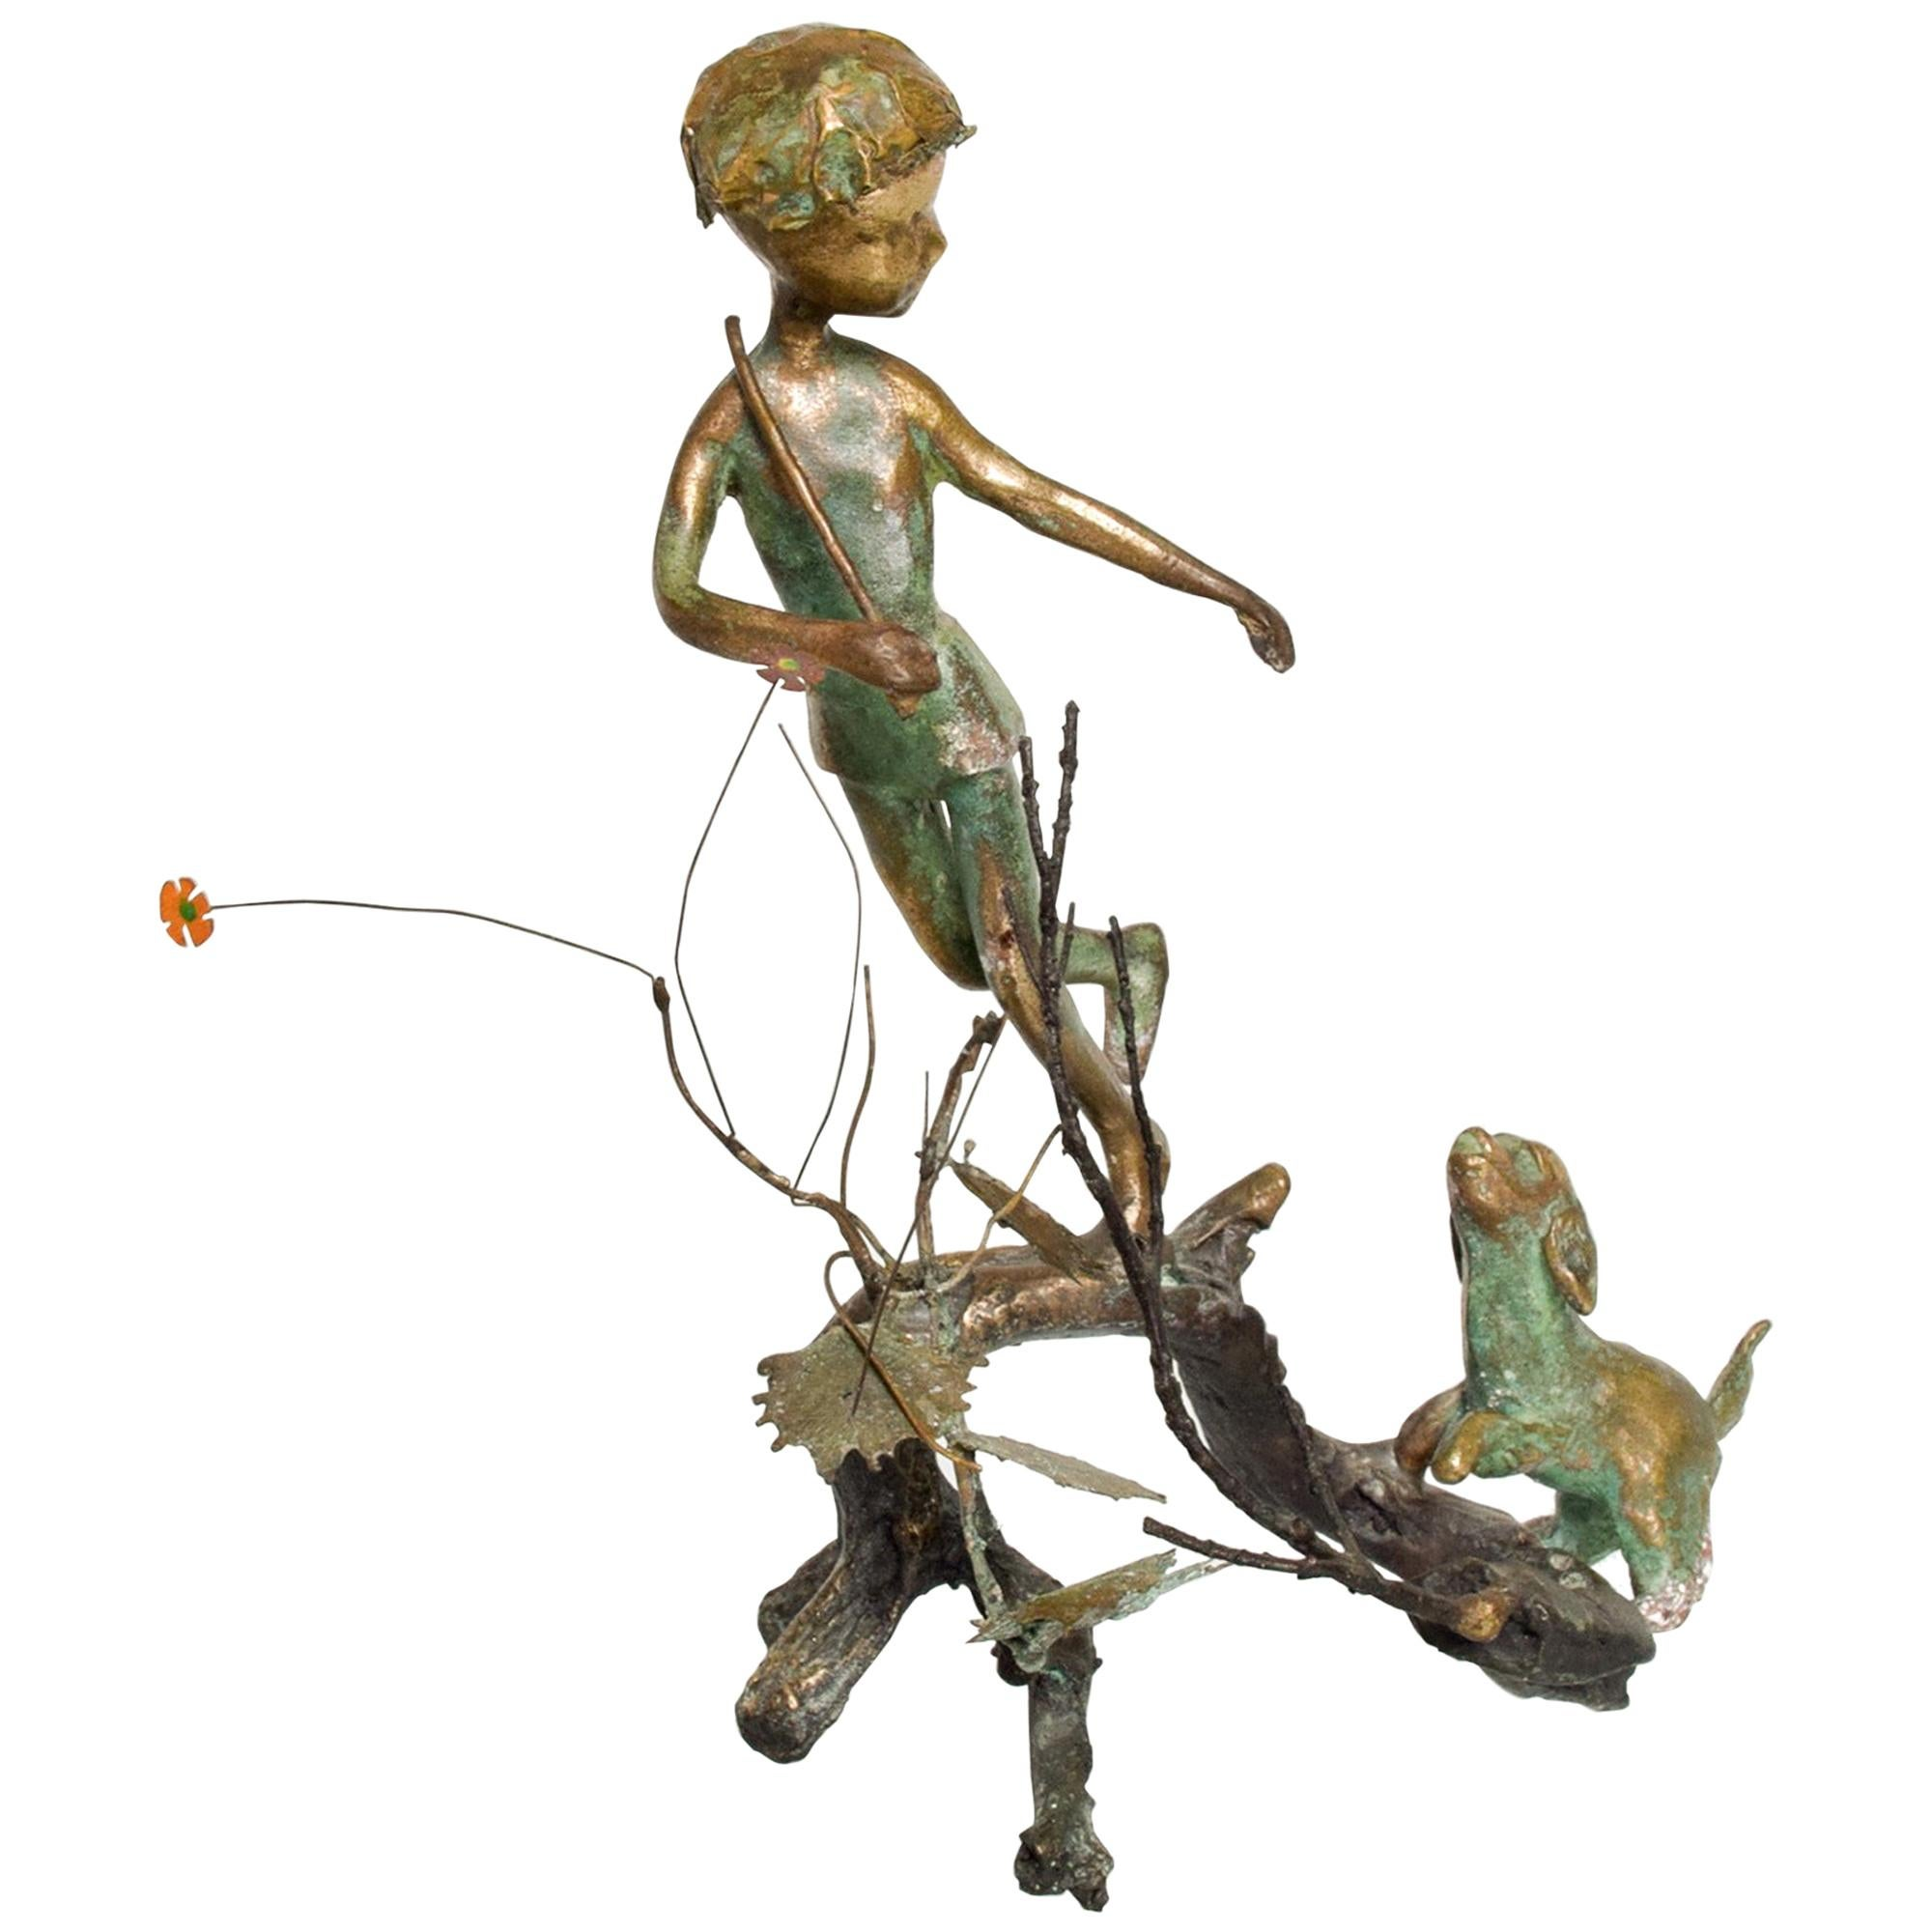 Poetic Bronze Art Sculpture Boy in Tree with Dog Giacometti Figural Style 1940s